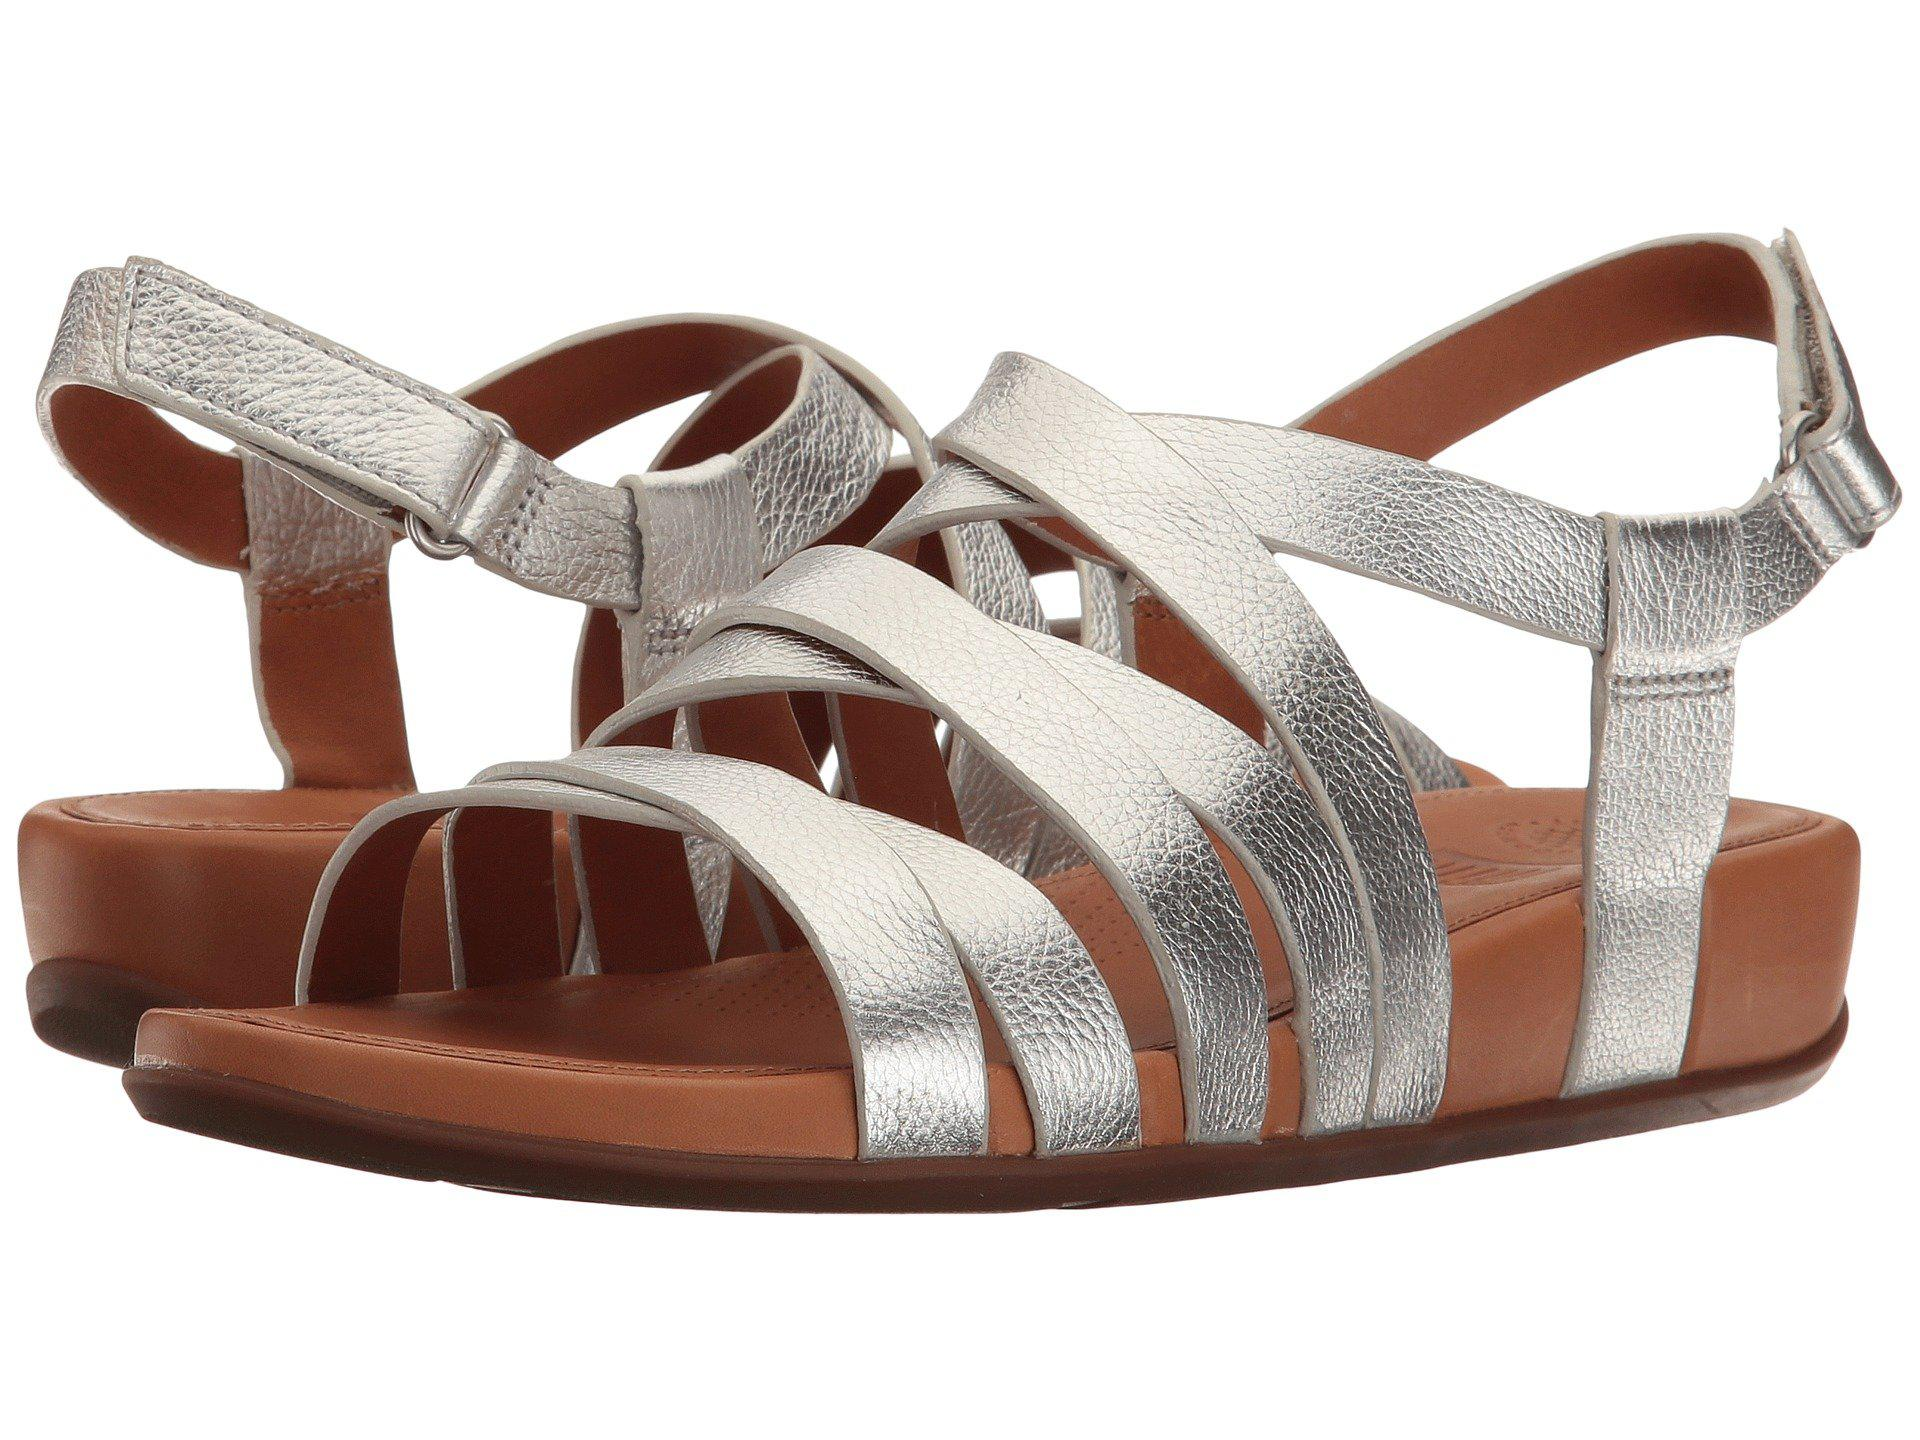 fc38fc2b24c Lyst - Fitflop Lumy Leather Sandal in Metallic